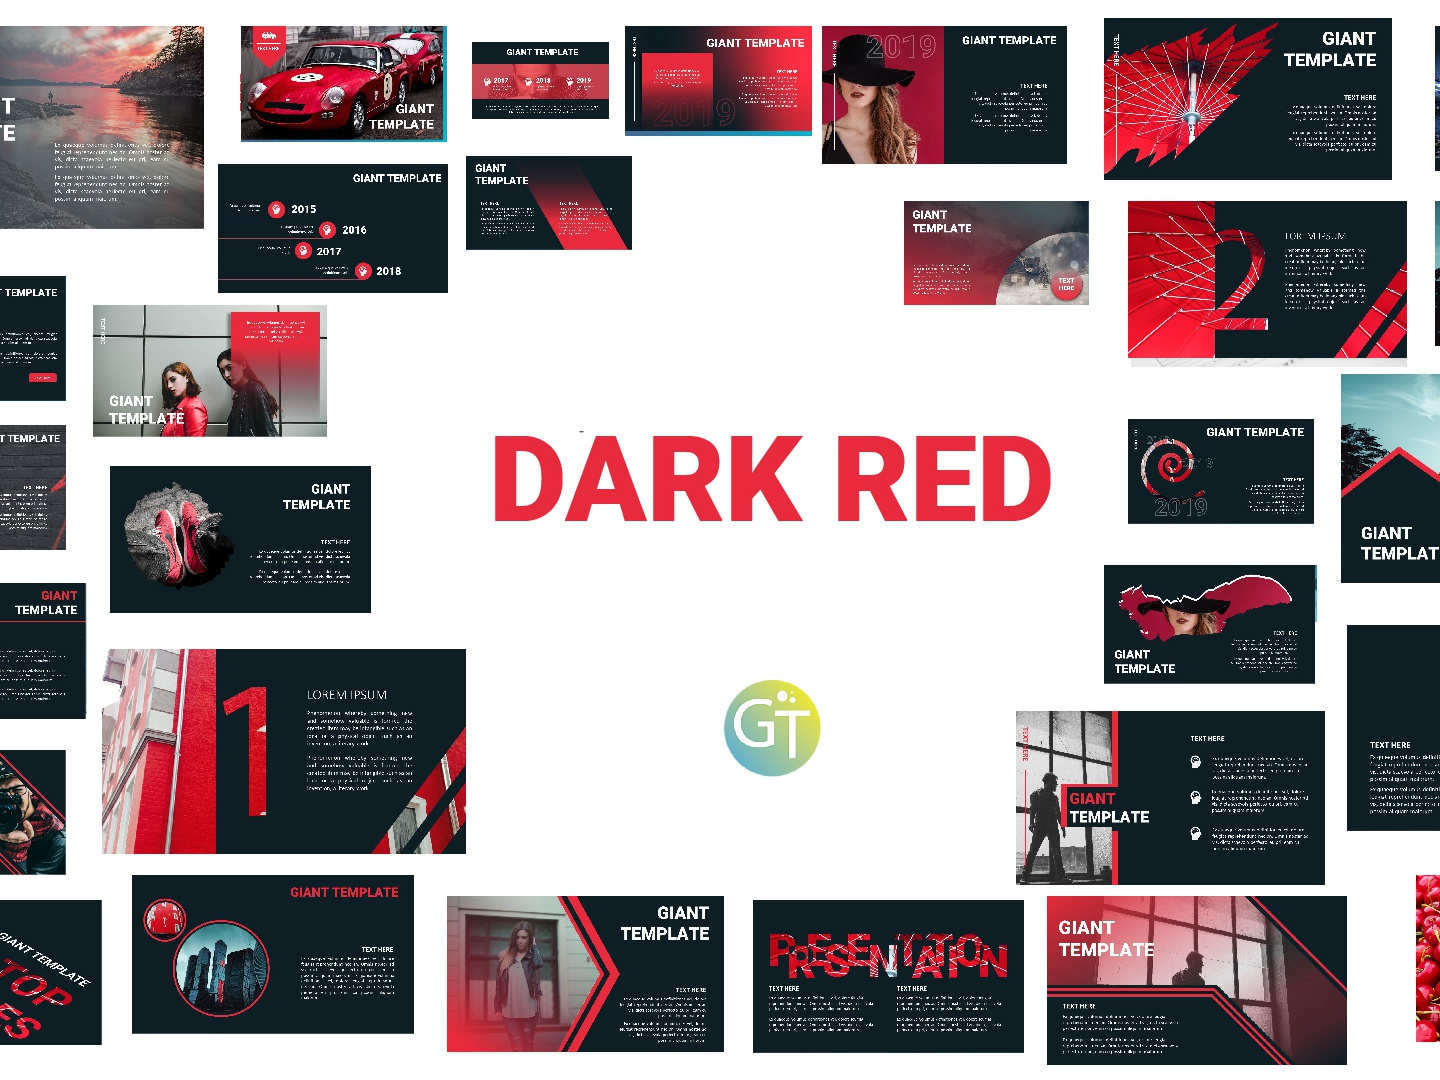 Dark Red Free Powerpoint Template By Giant Template On